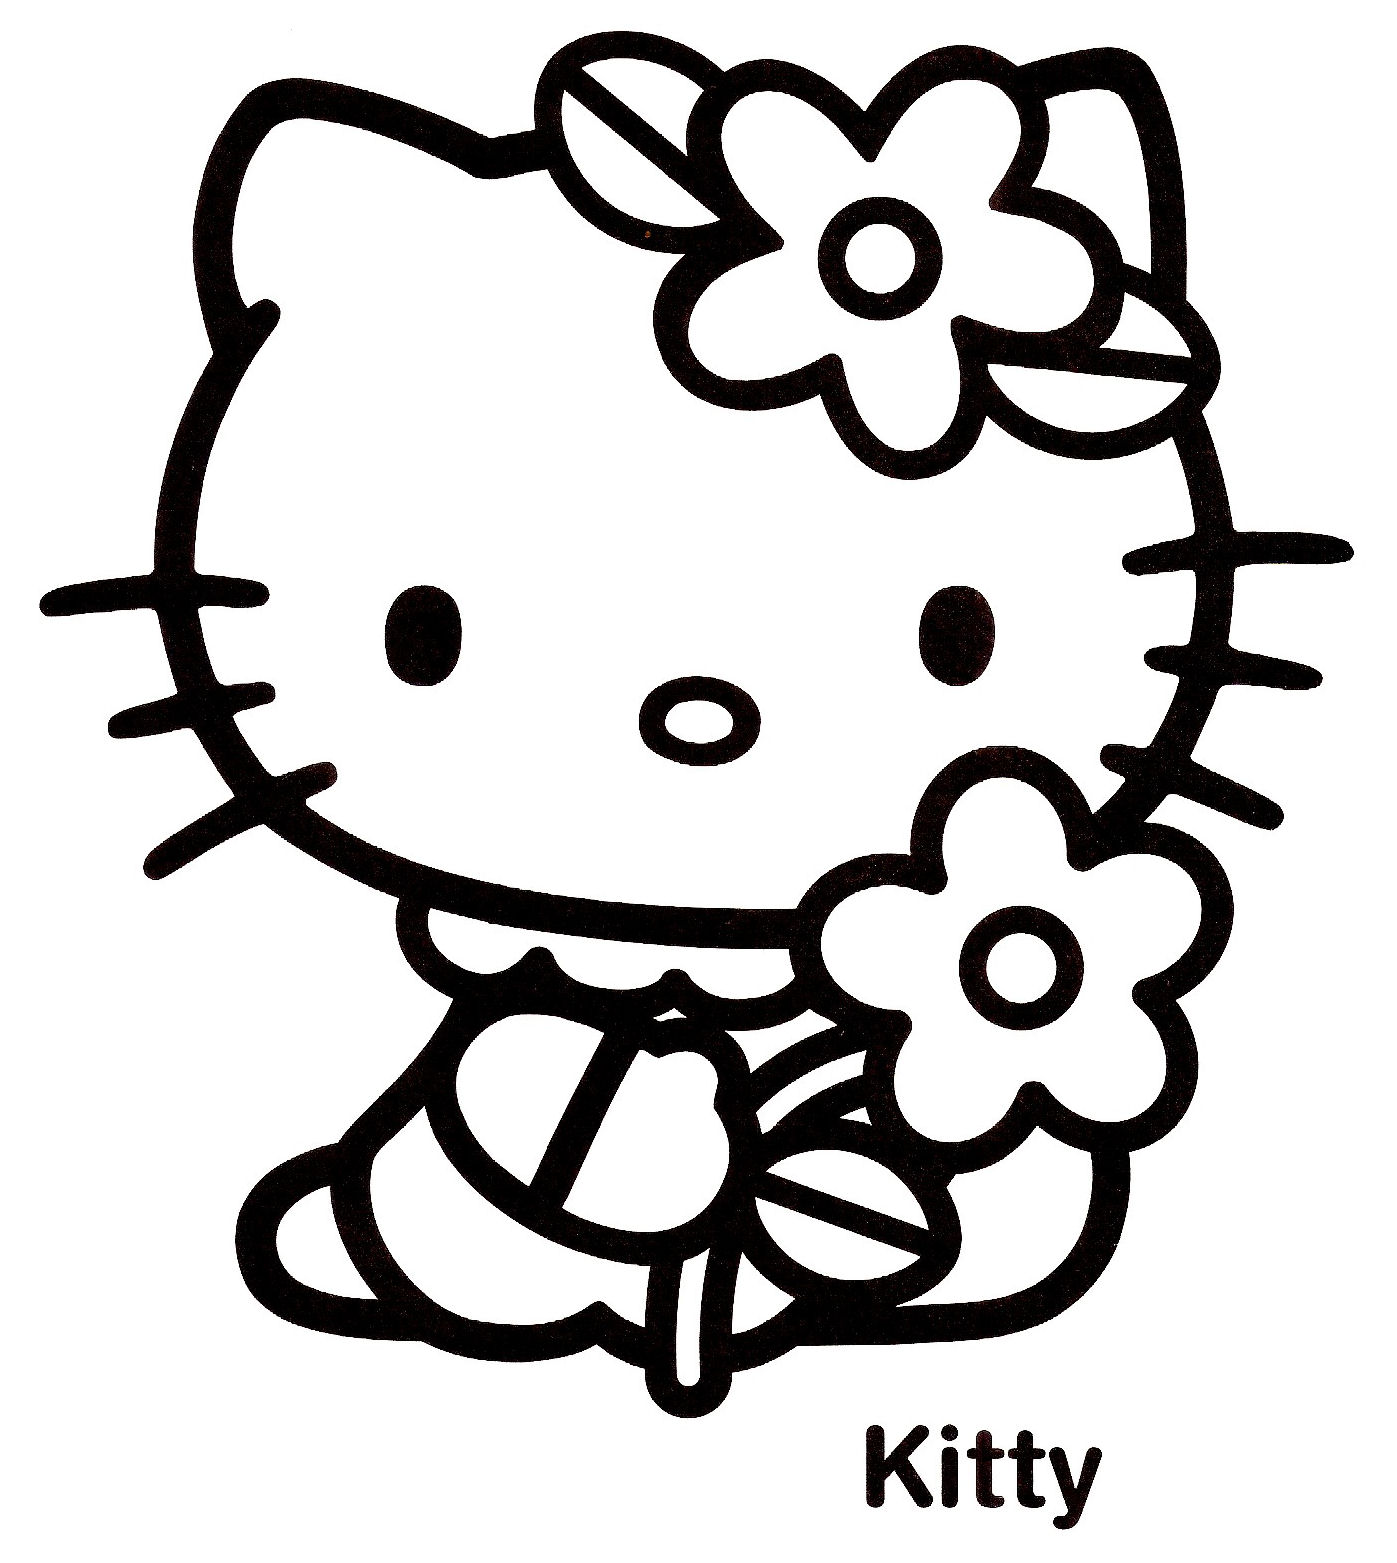 140 dessins de coloriage hello kitty imprimer - Coloriage hello kitty gratuit ...